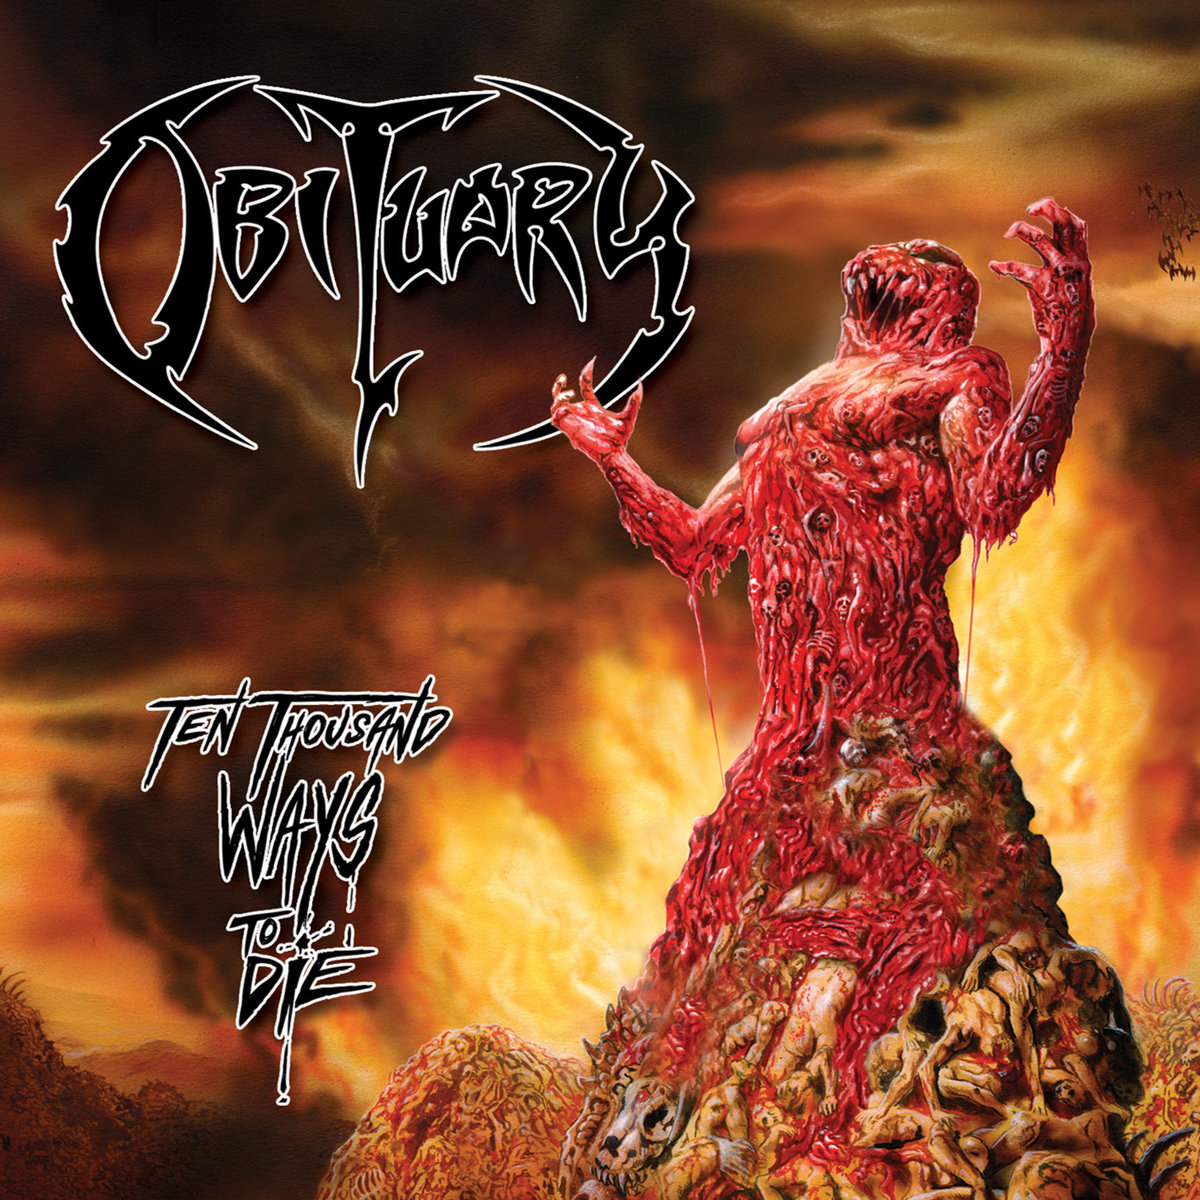 Obituary – Ten Thousand Ways To Die